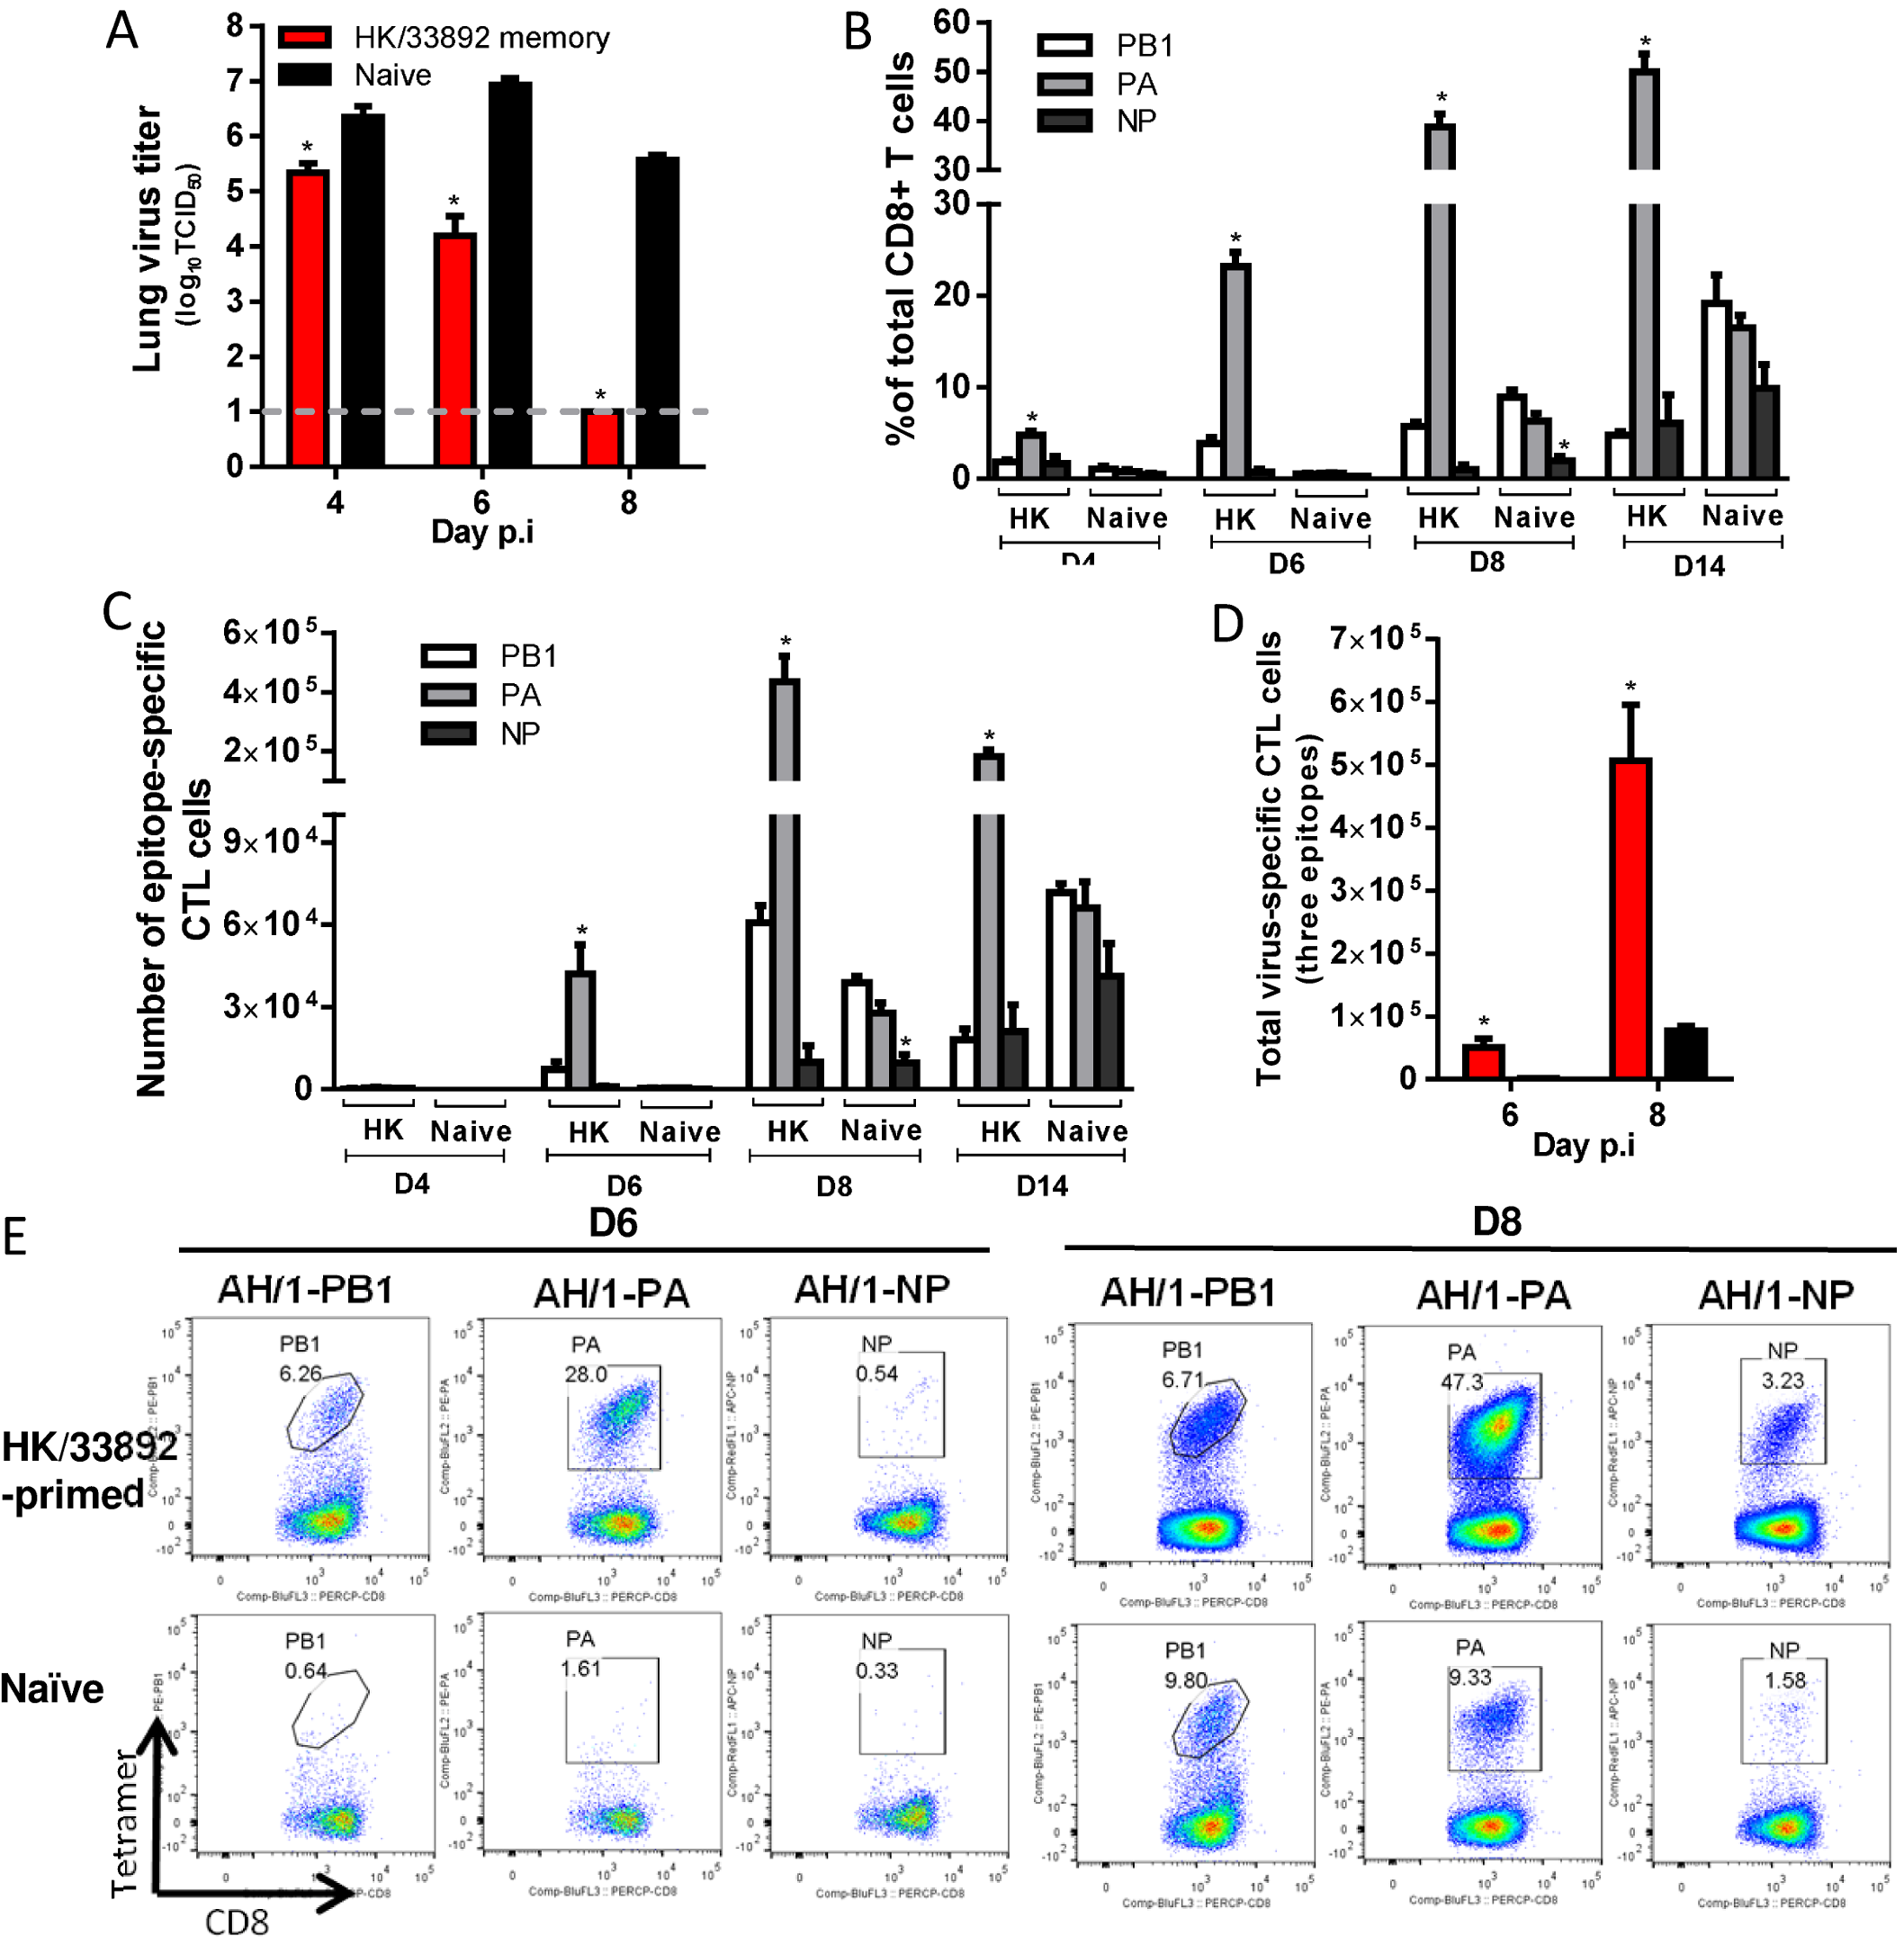 Comparing the primary and secondary CTL responses in naïve and HK/33892(H9N2)-primed mice challenged with the H7N9 virus.